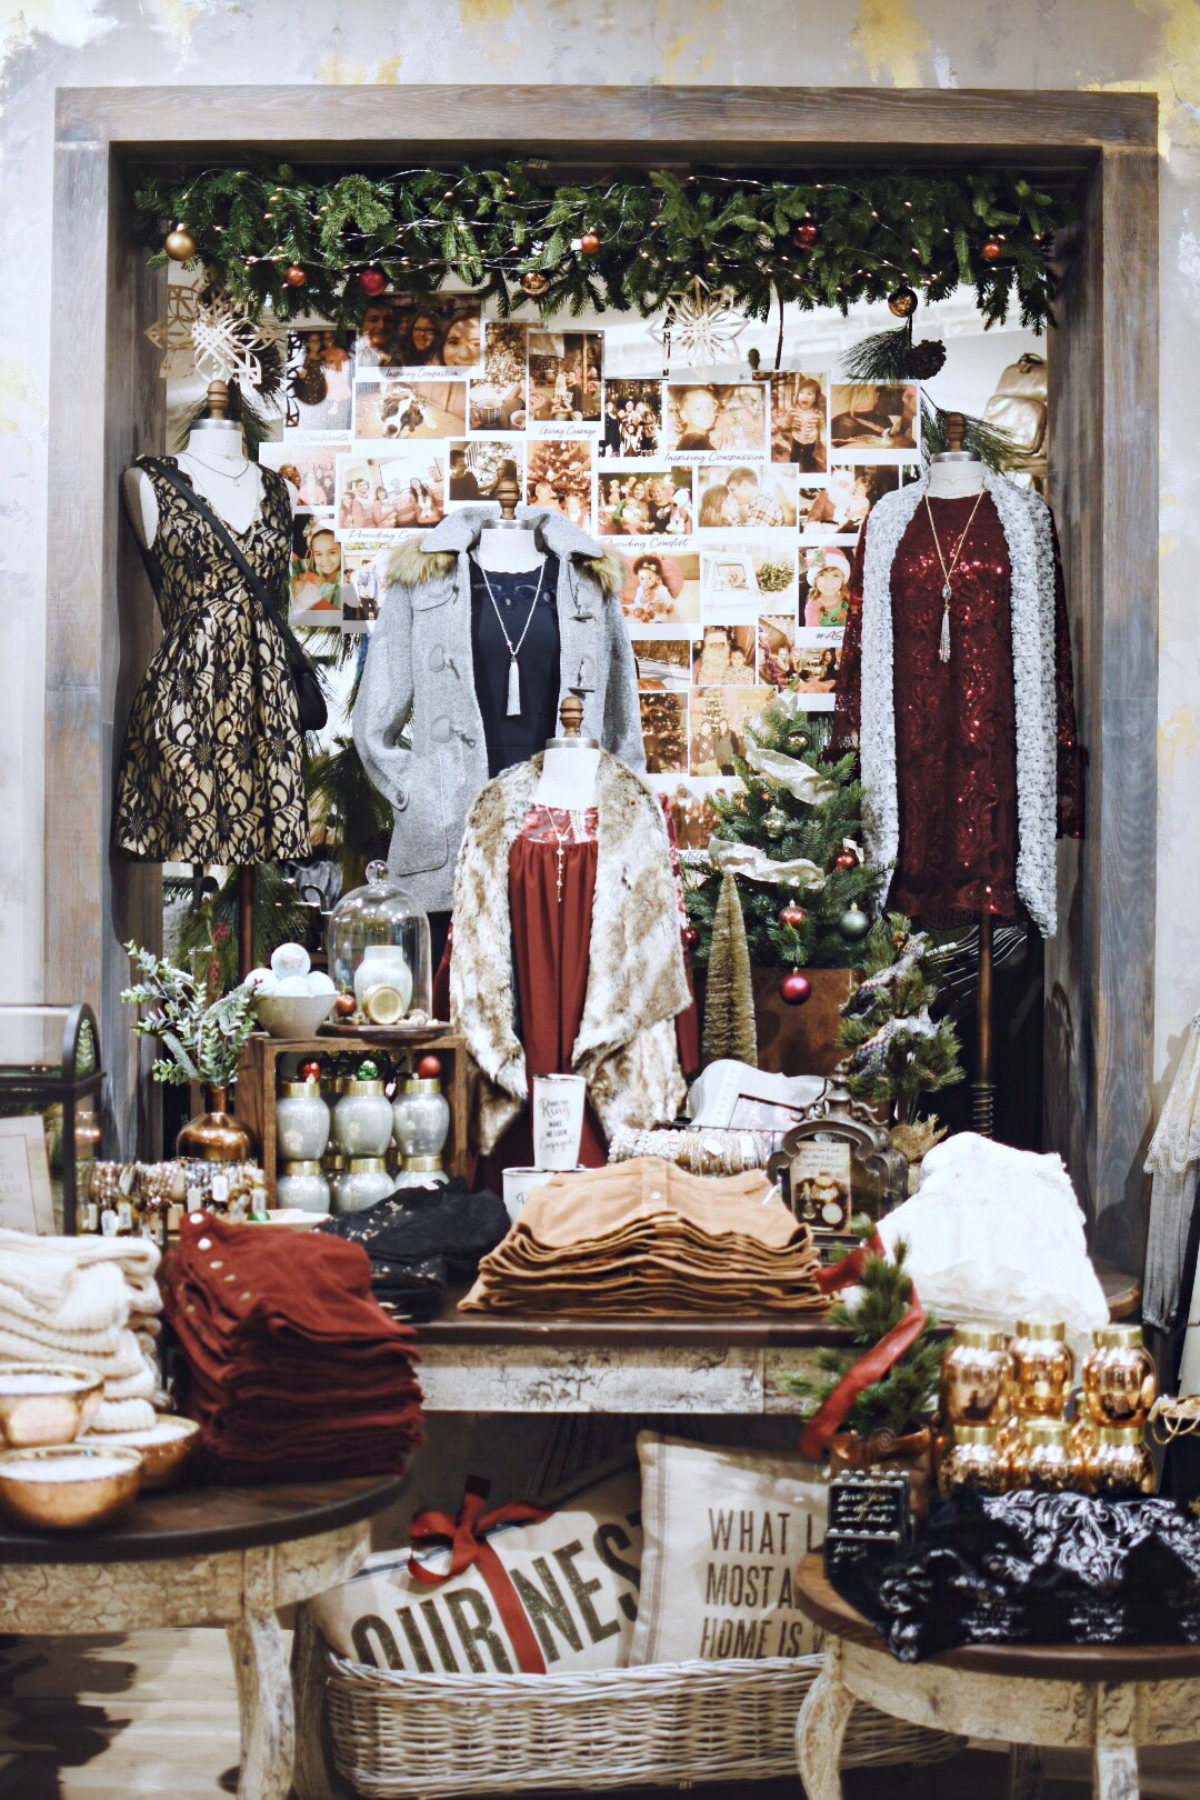 Altar'D State Gives Warmth campaign